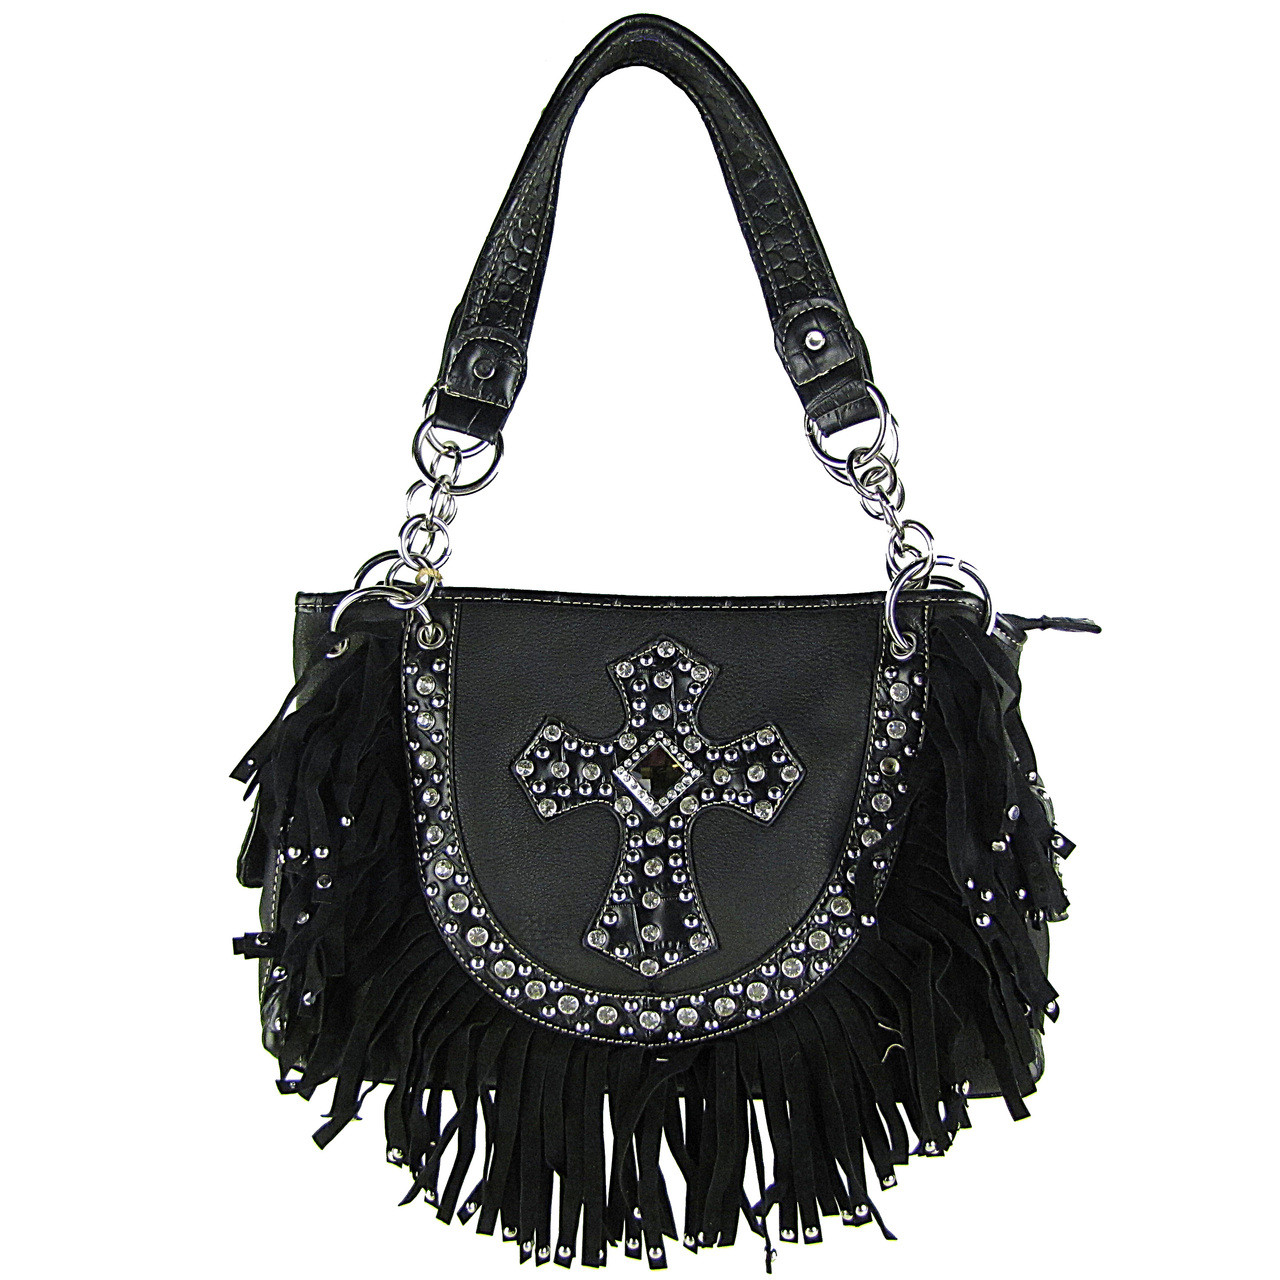 BLACK RUFFLE RHINESTONE CROSS LOOK SHOULDER HANDBAG HB1-HC0062BLK